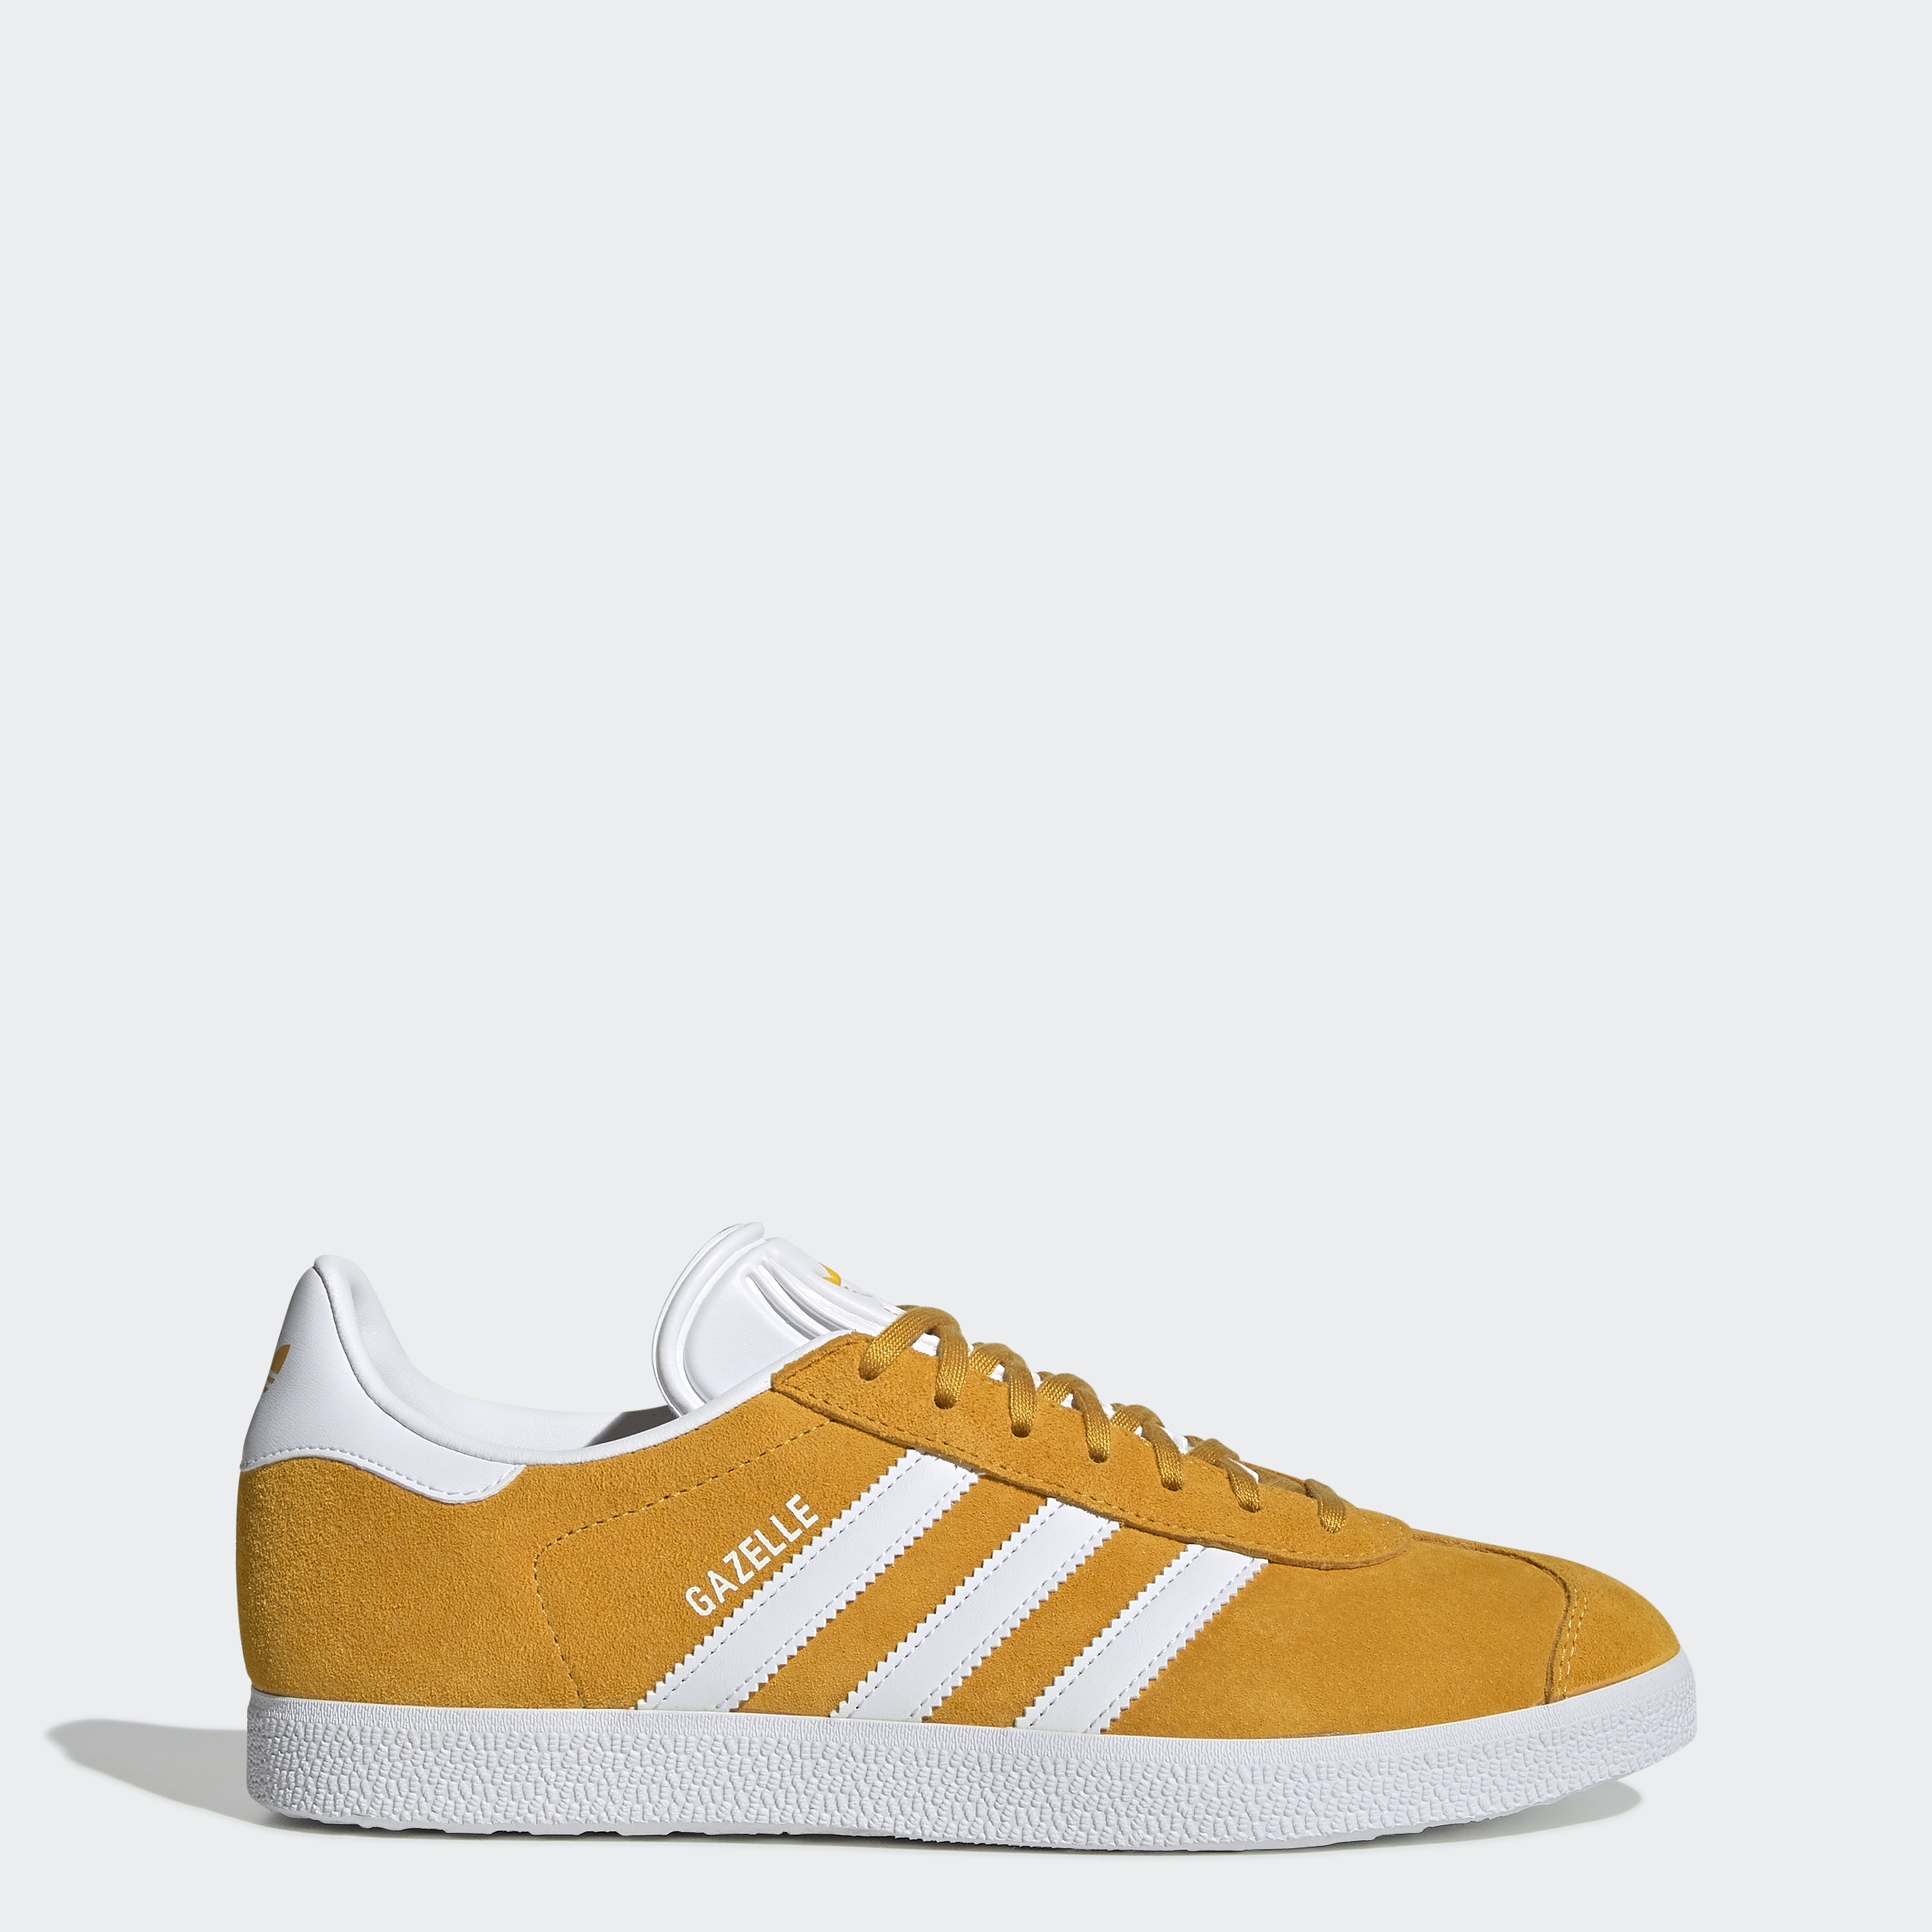 adidas-Originals-Gazelle-Shoes-Men-039-s thumbnail 28